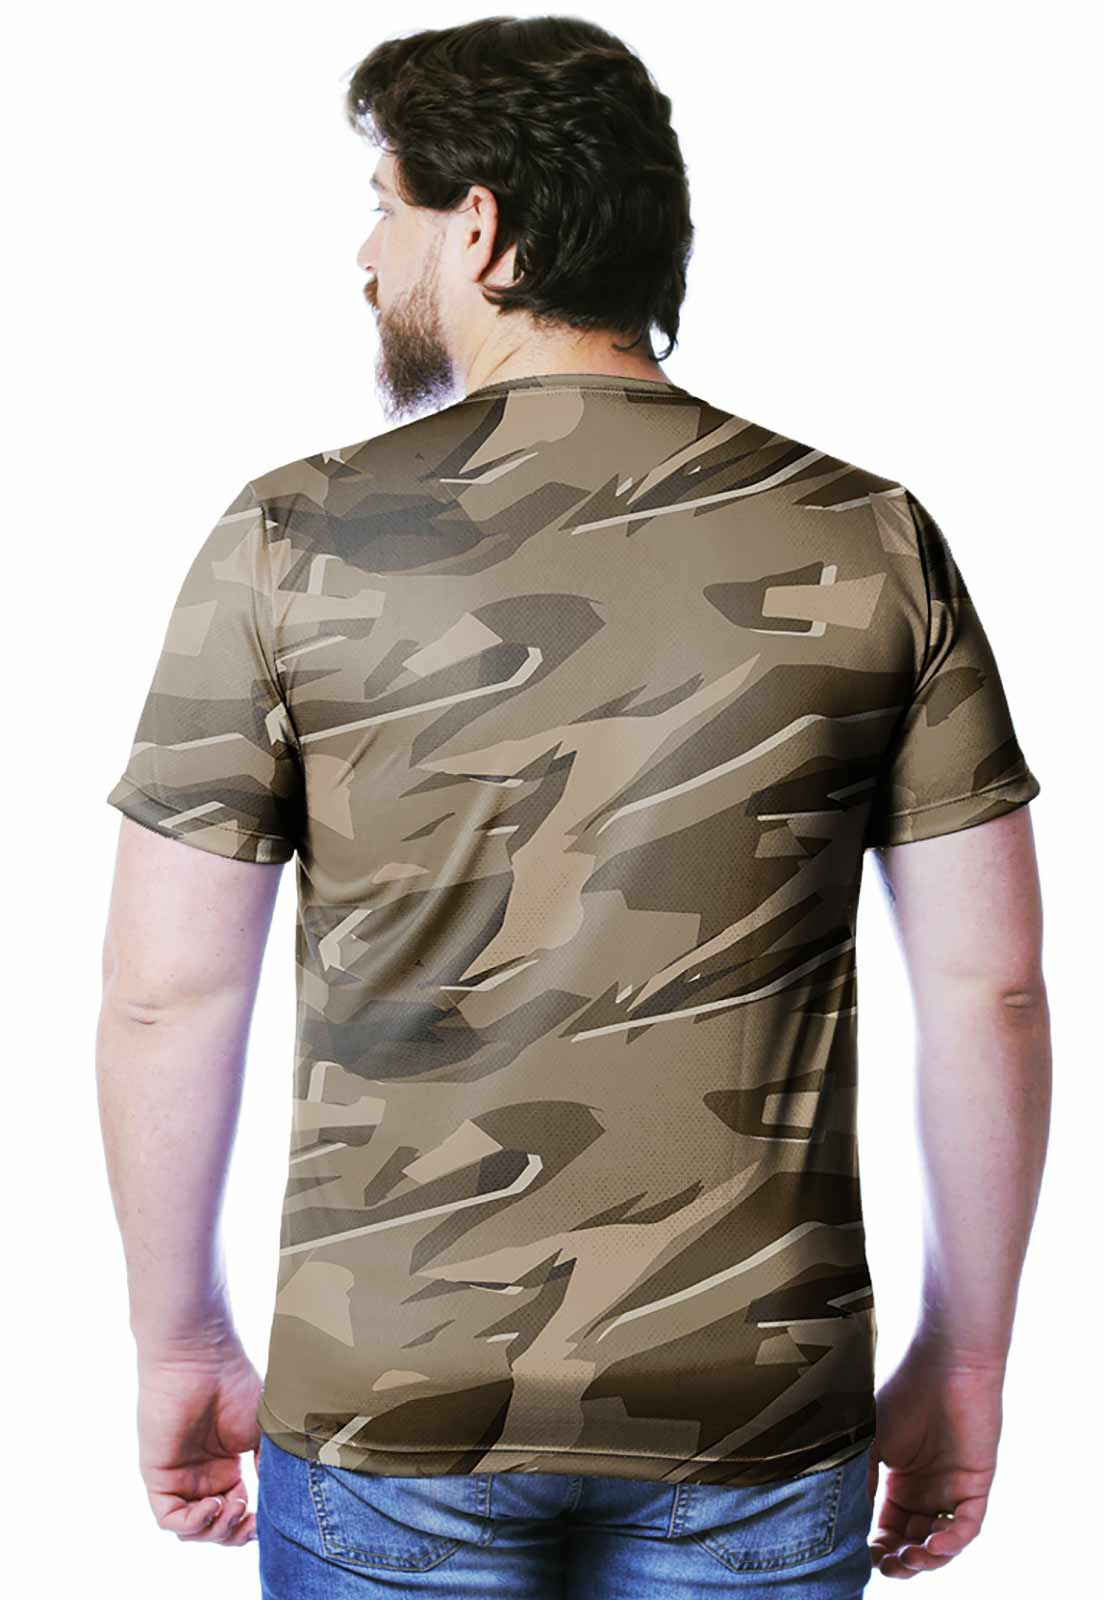 CAMISETA CAMUFLADA PARABELLUM DESERTO MASCULINA  - REAL HUNTER OUTDOORS